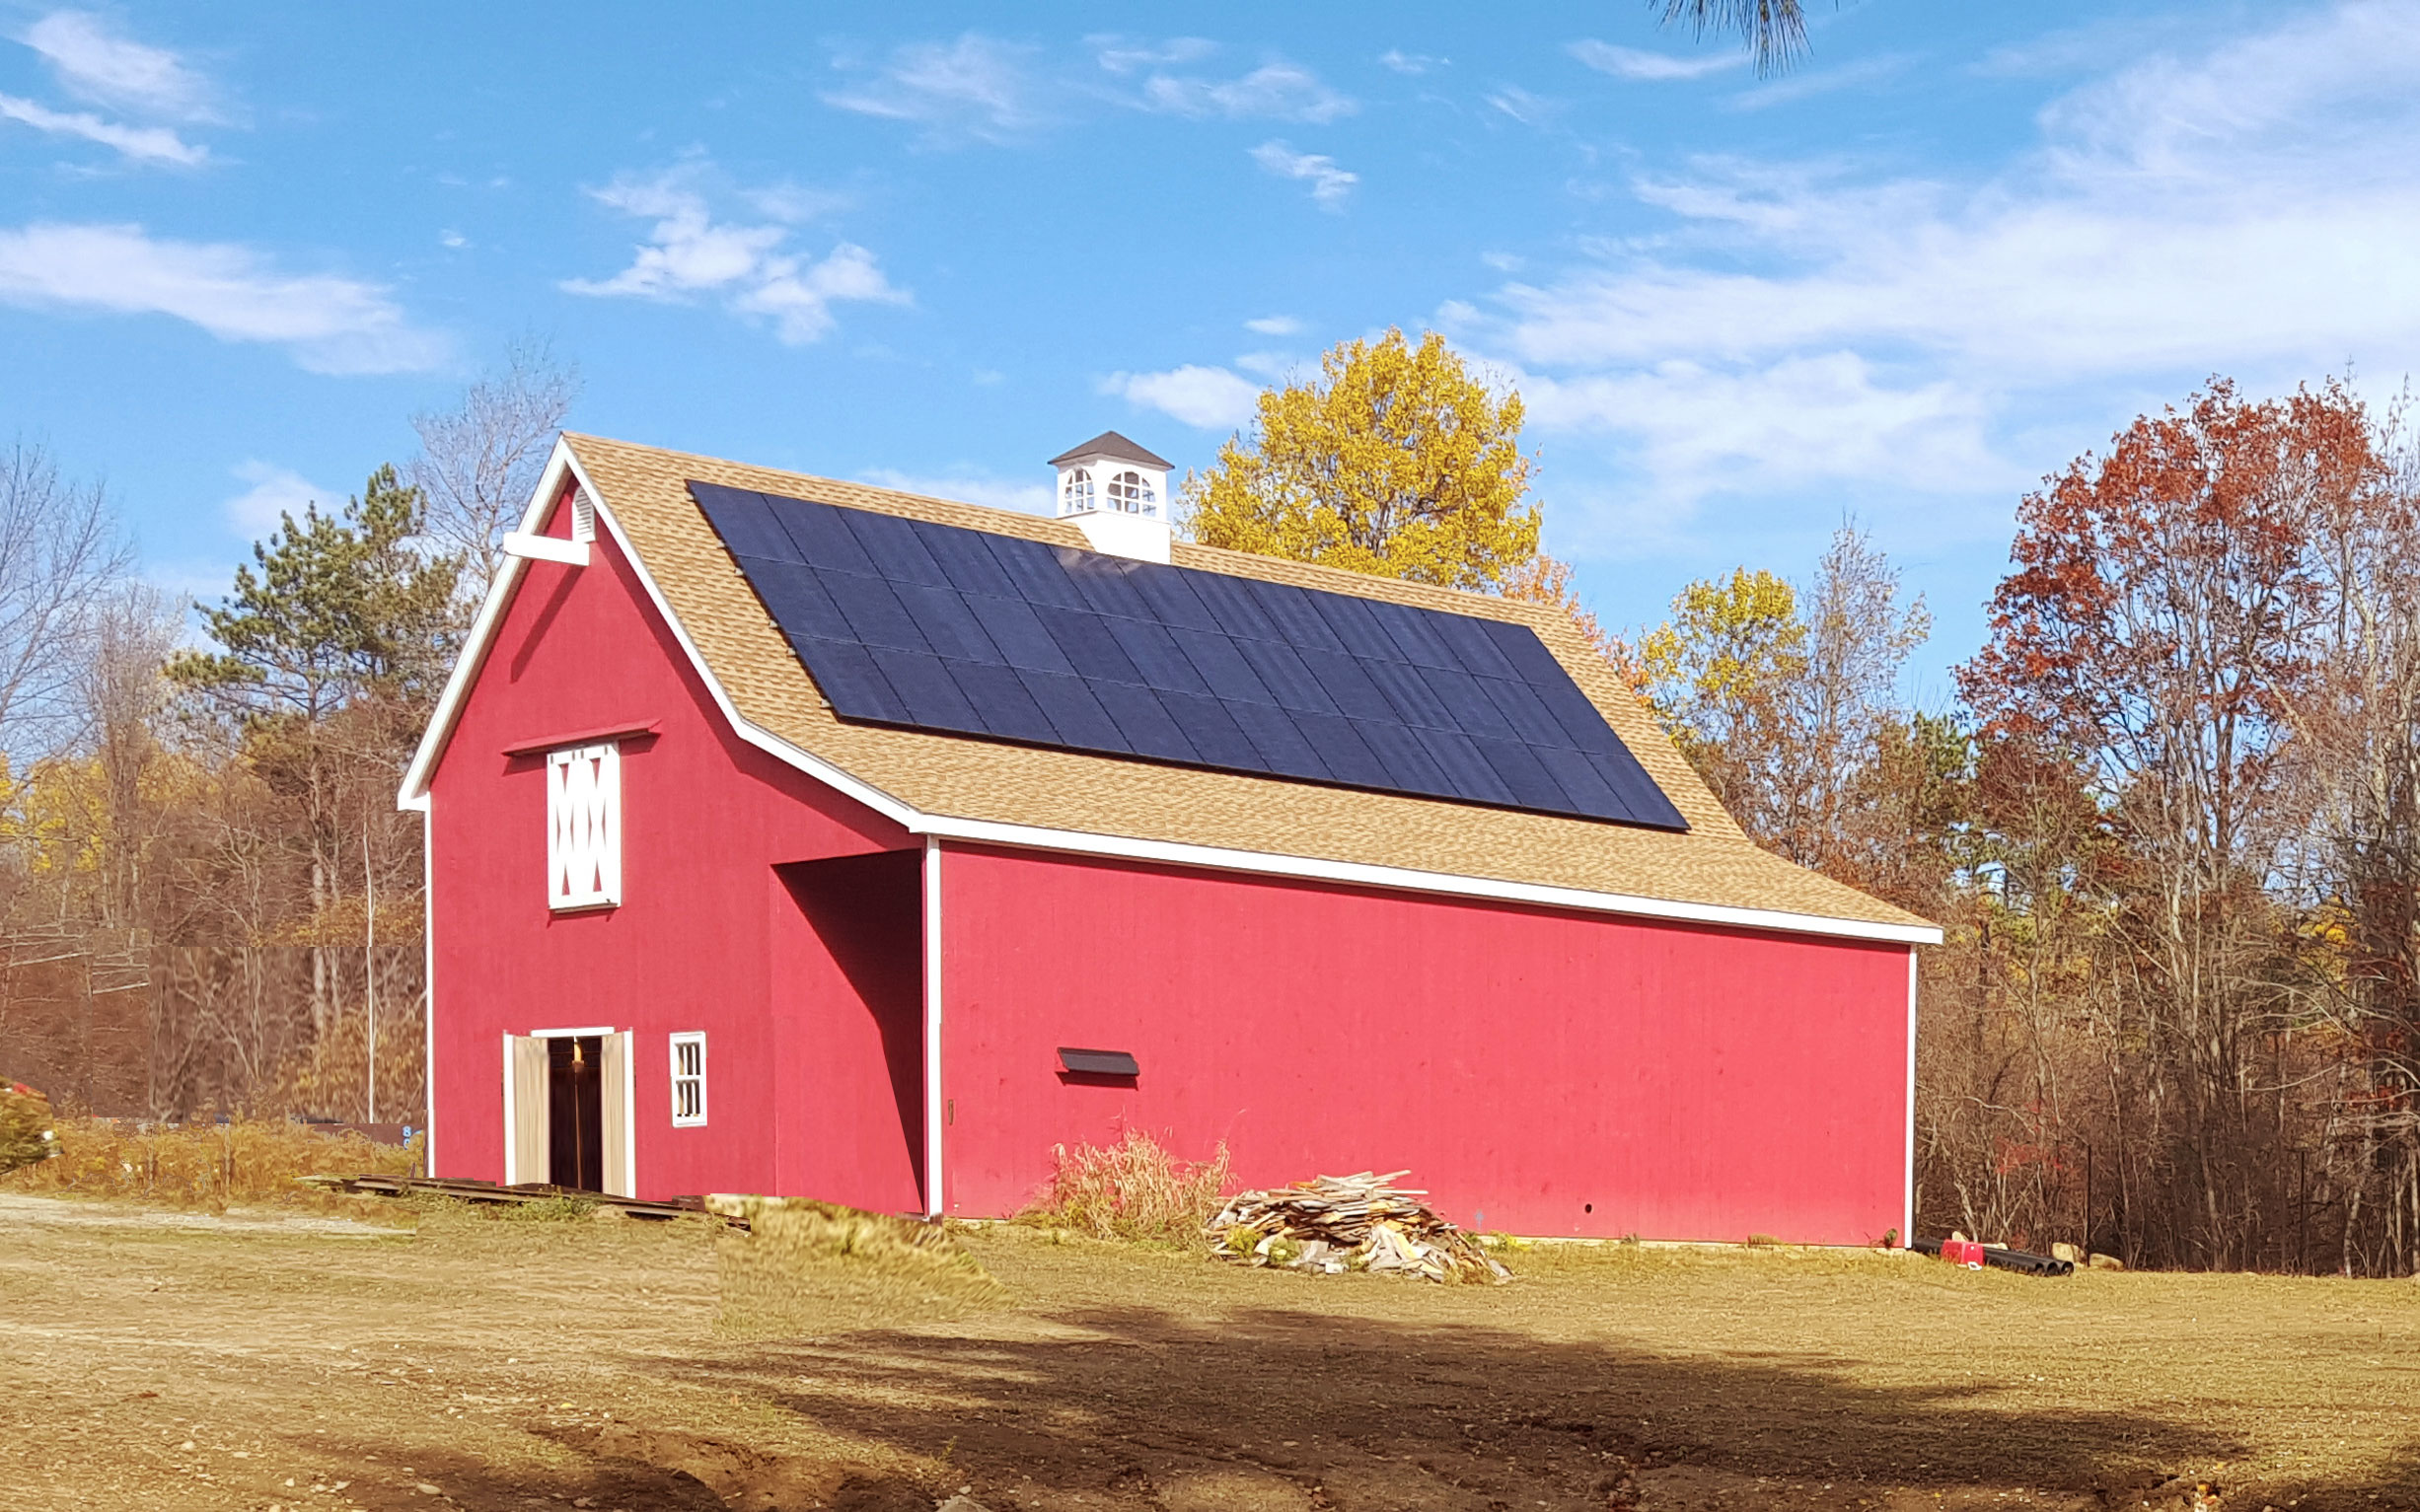 off-the-grid-litchfield-solar-PV-barn.jpg